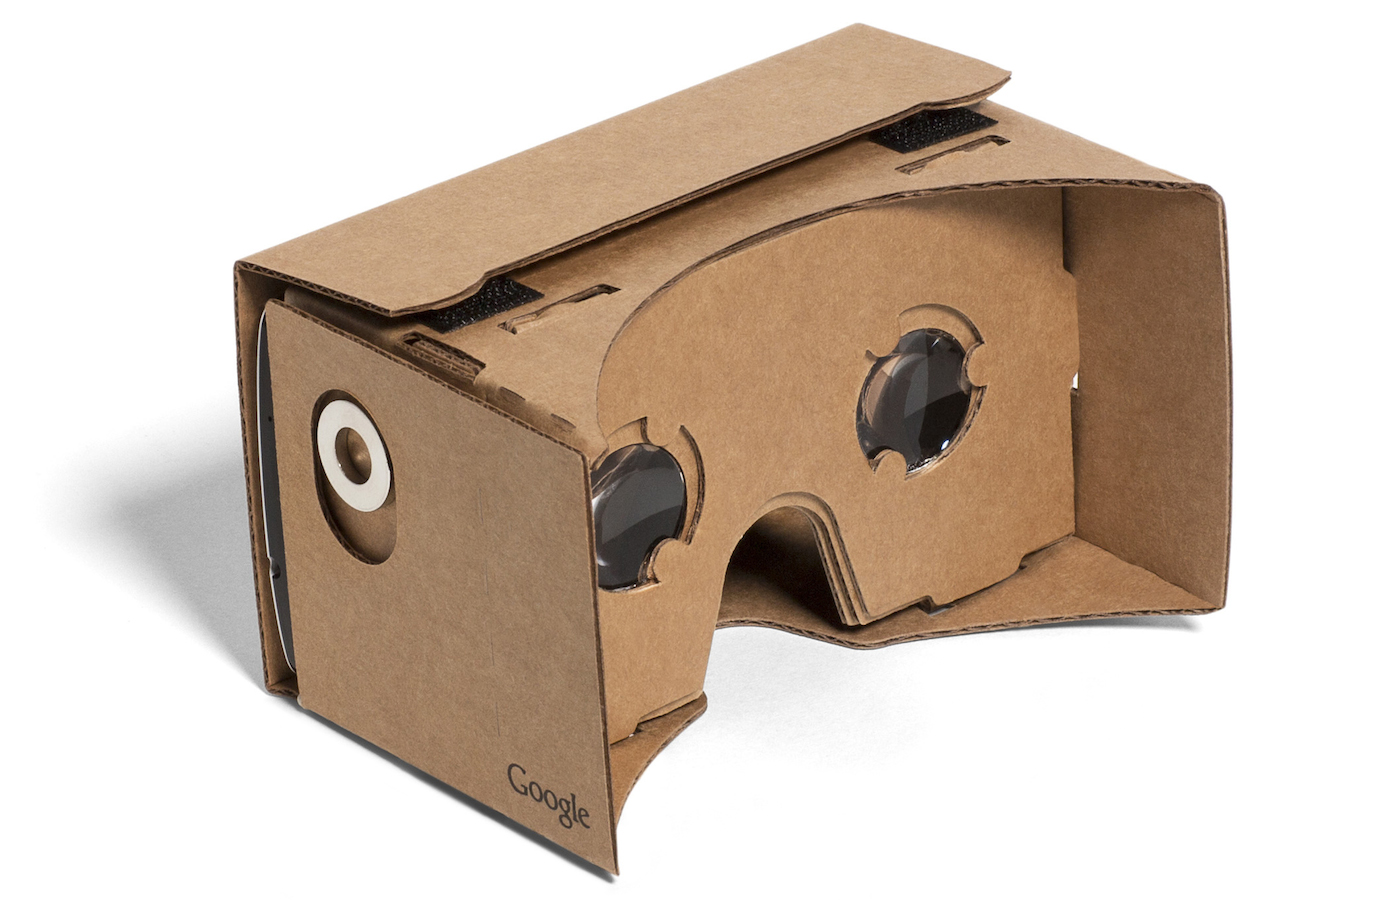 Experience virtual reality in a simple, fun, and affordable way.